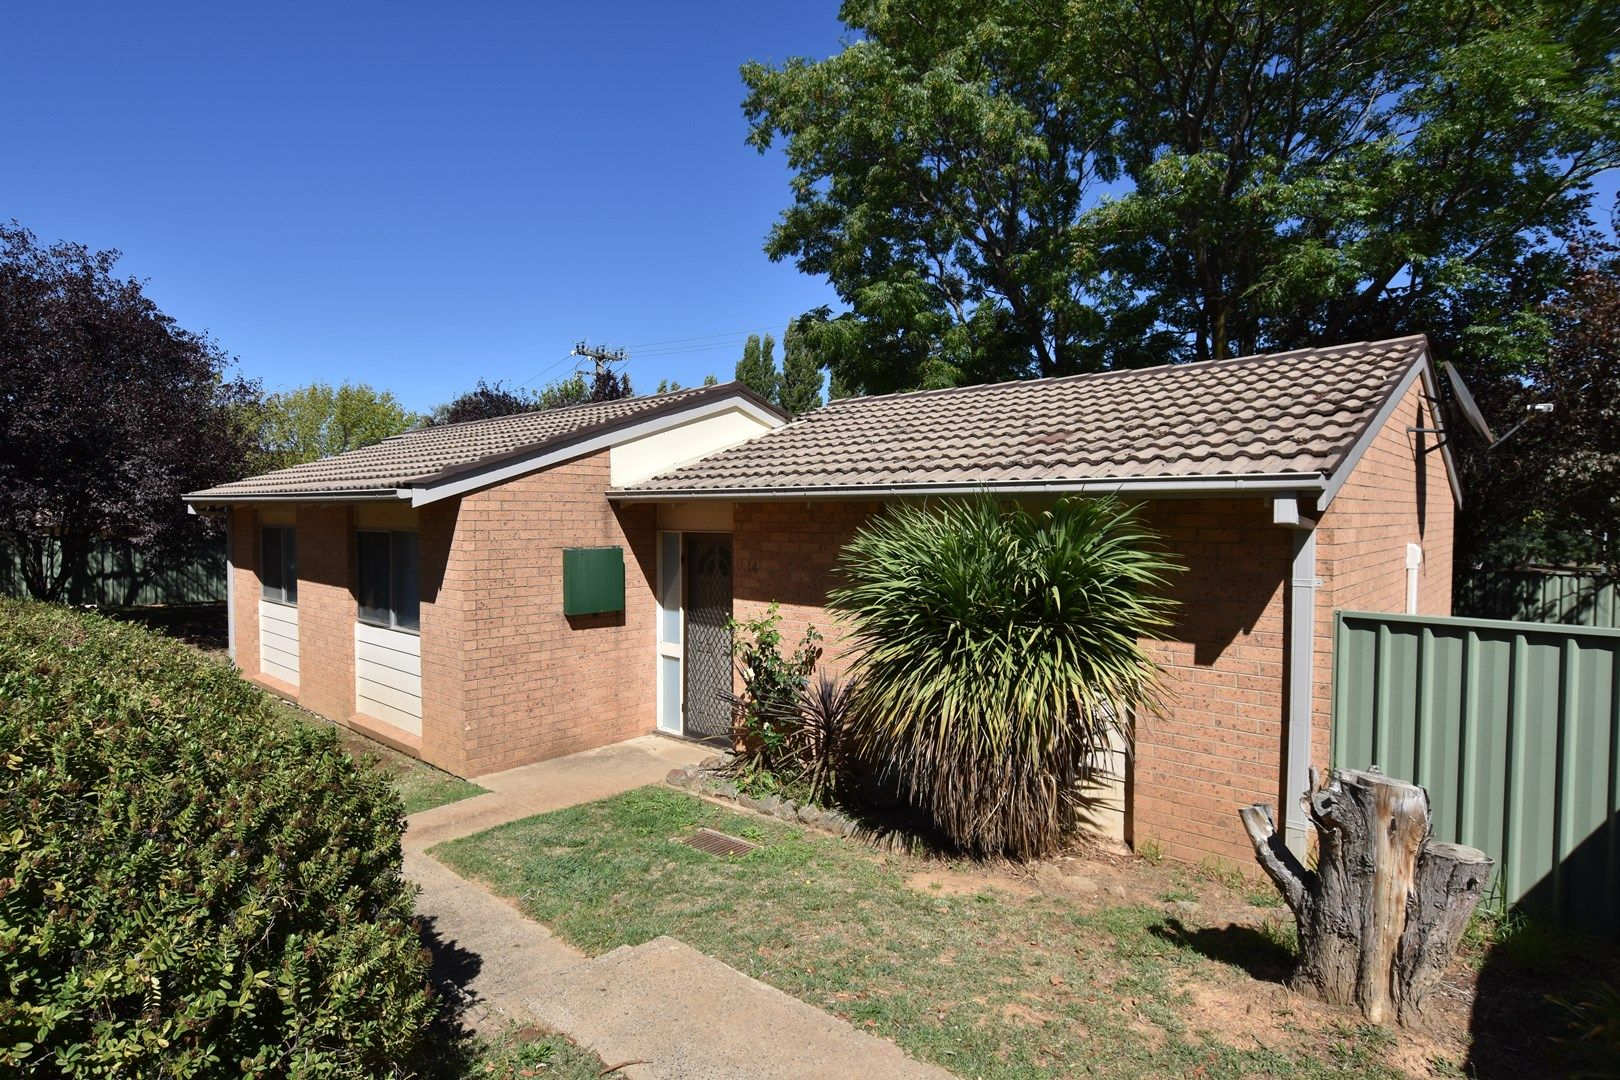 14/5-12 KEITHIAN PLACE, Orange NSW 2800, Image 0